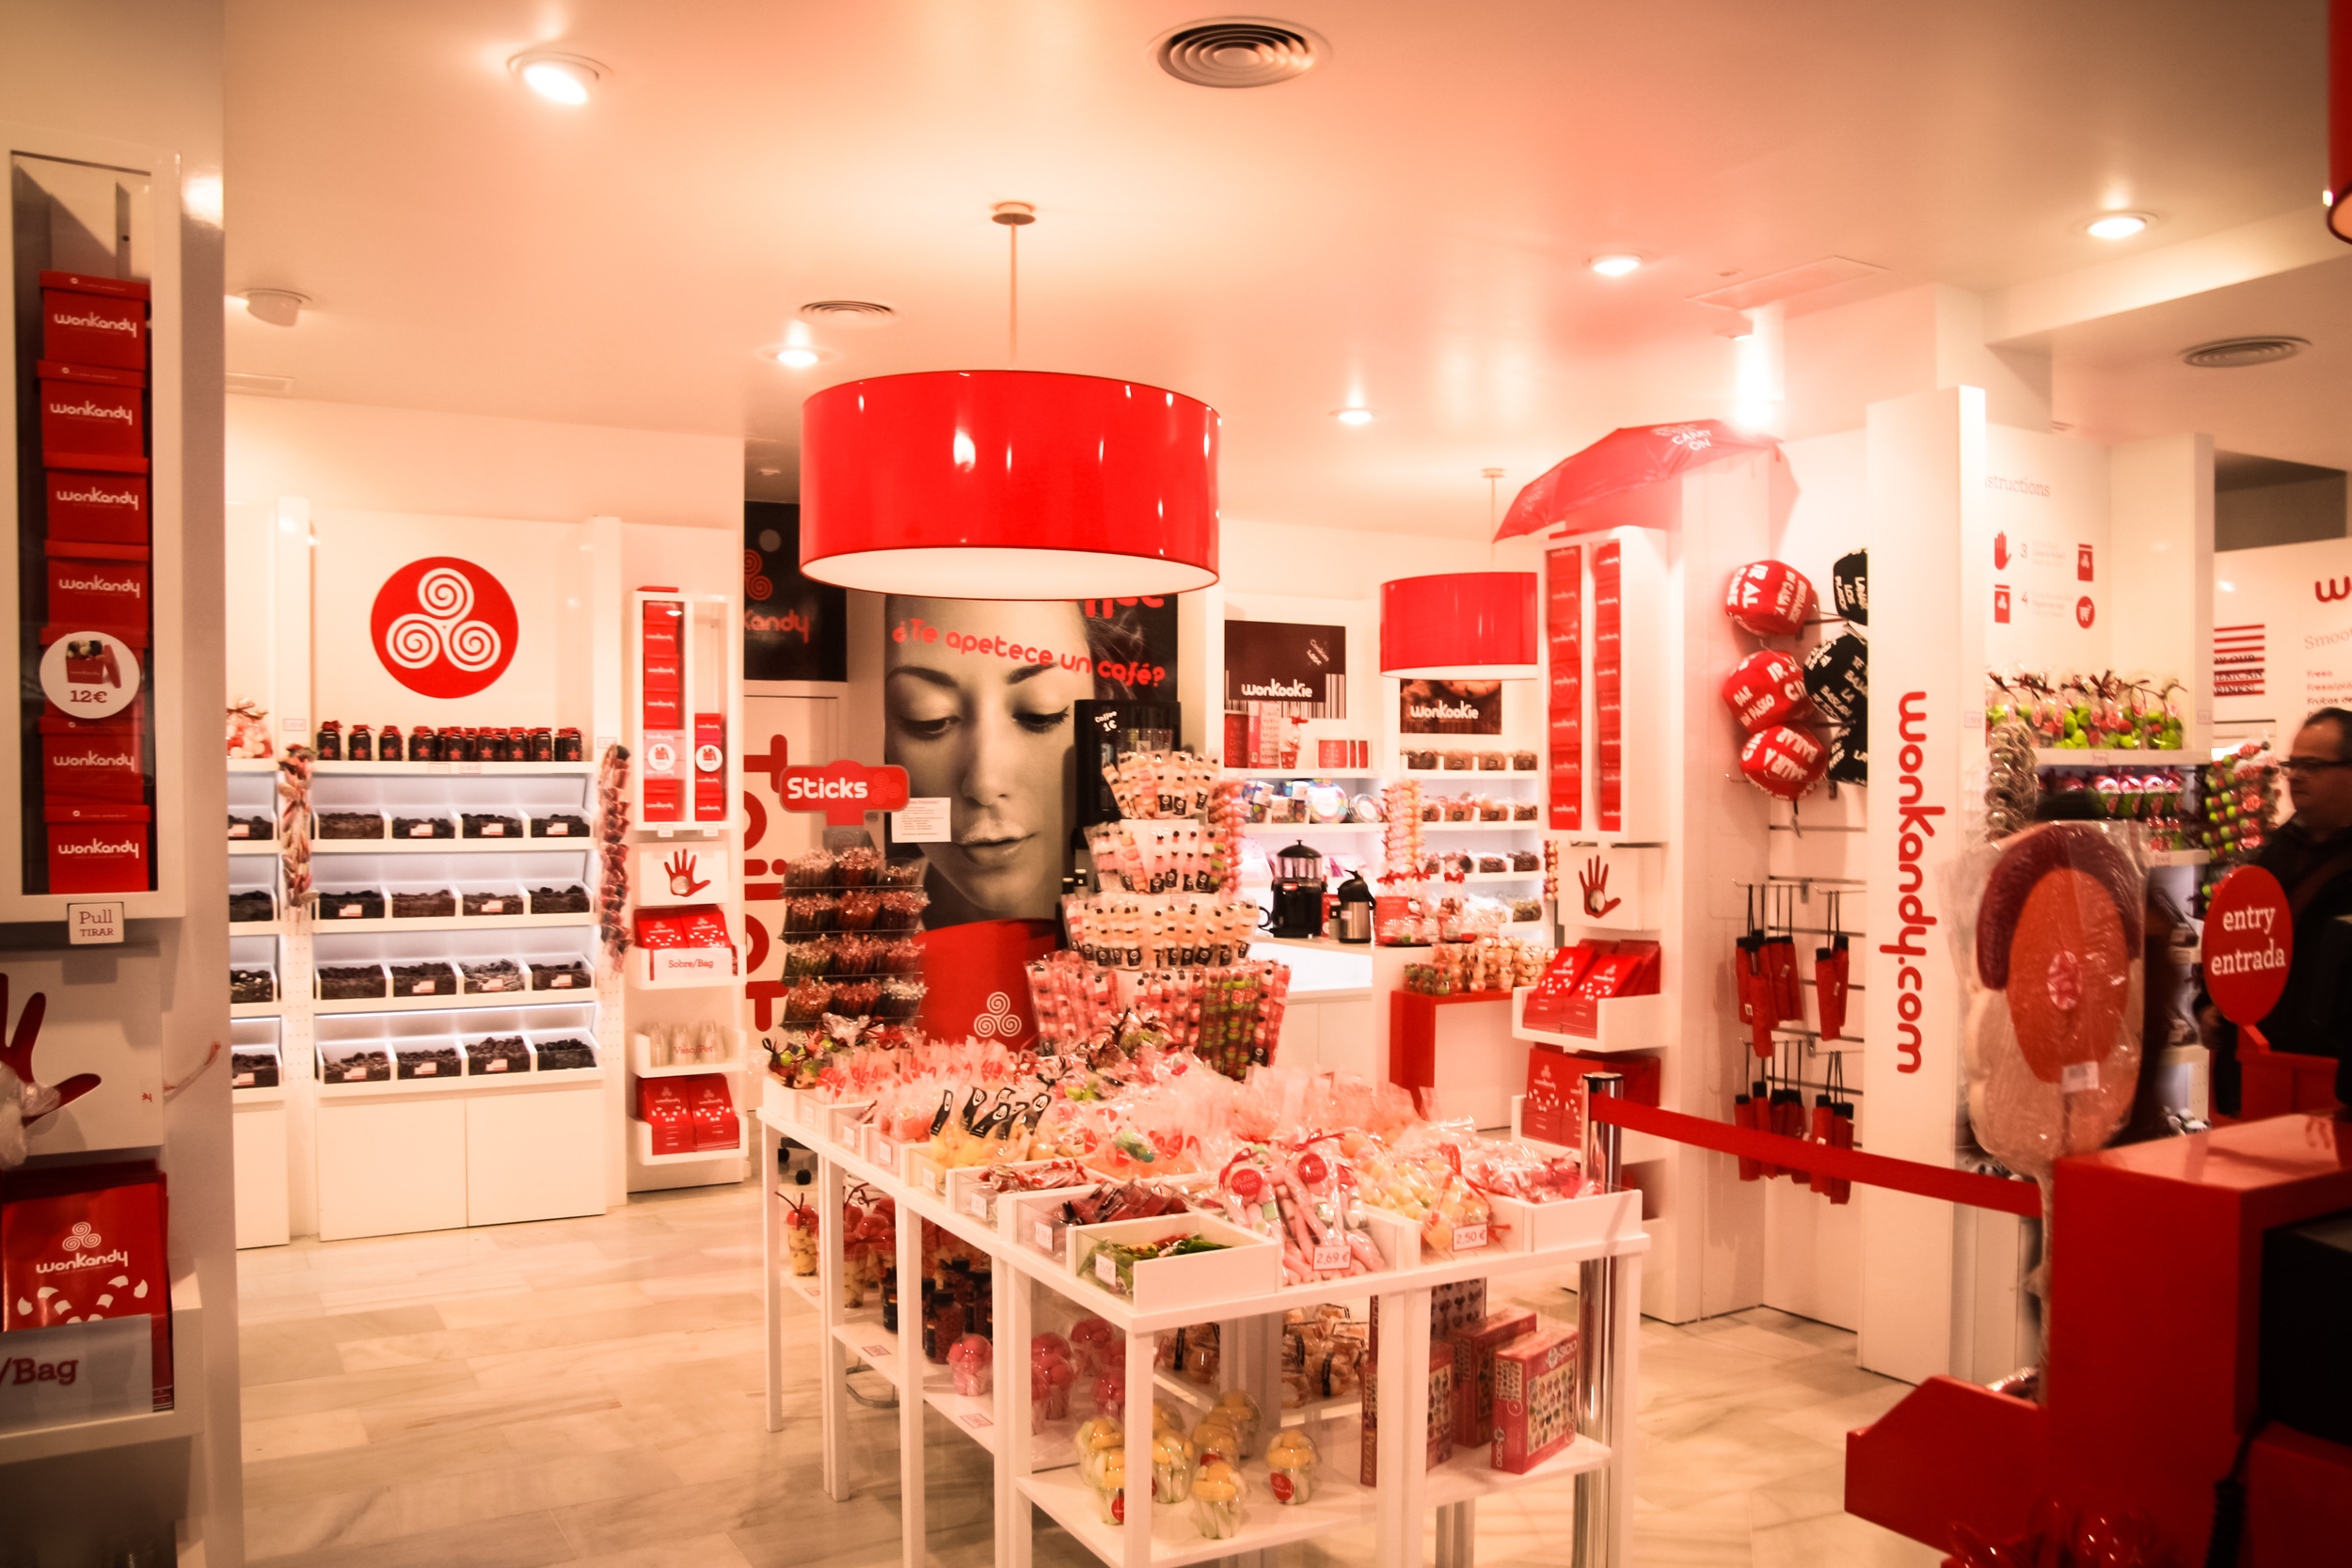 Welcome to wonkandy. Stephanie's own personal Spanish candy store heaven.